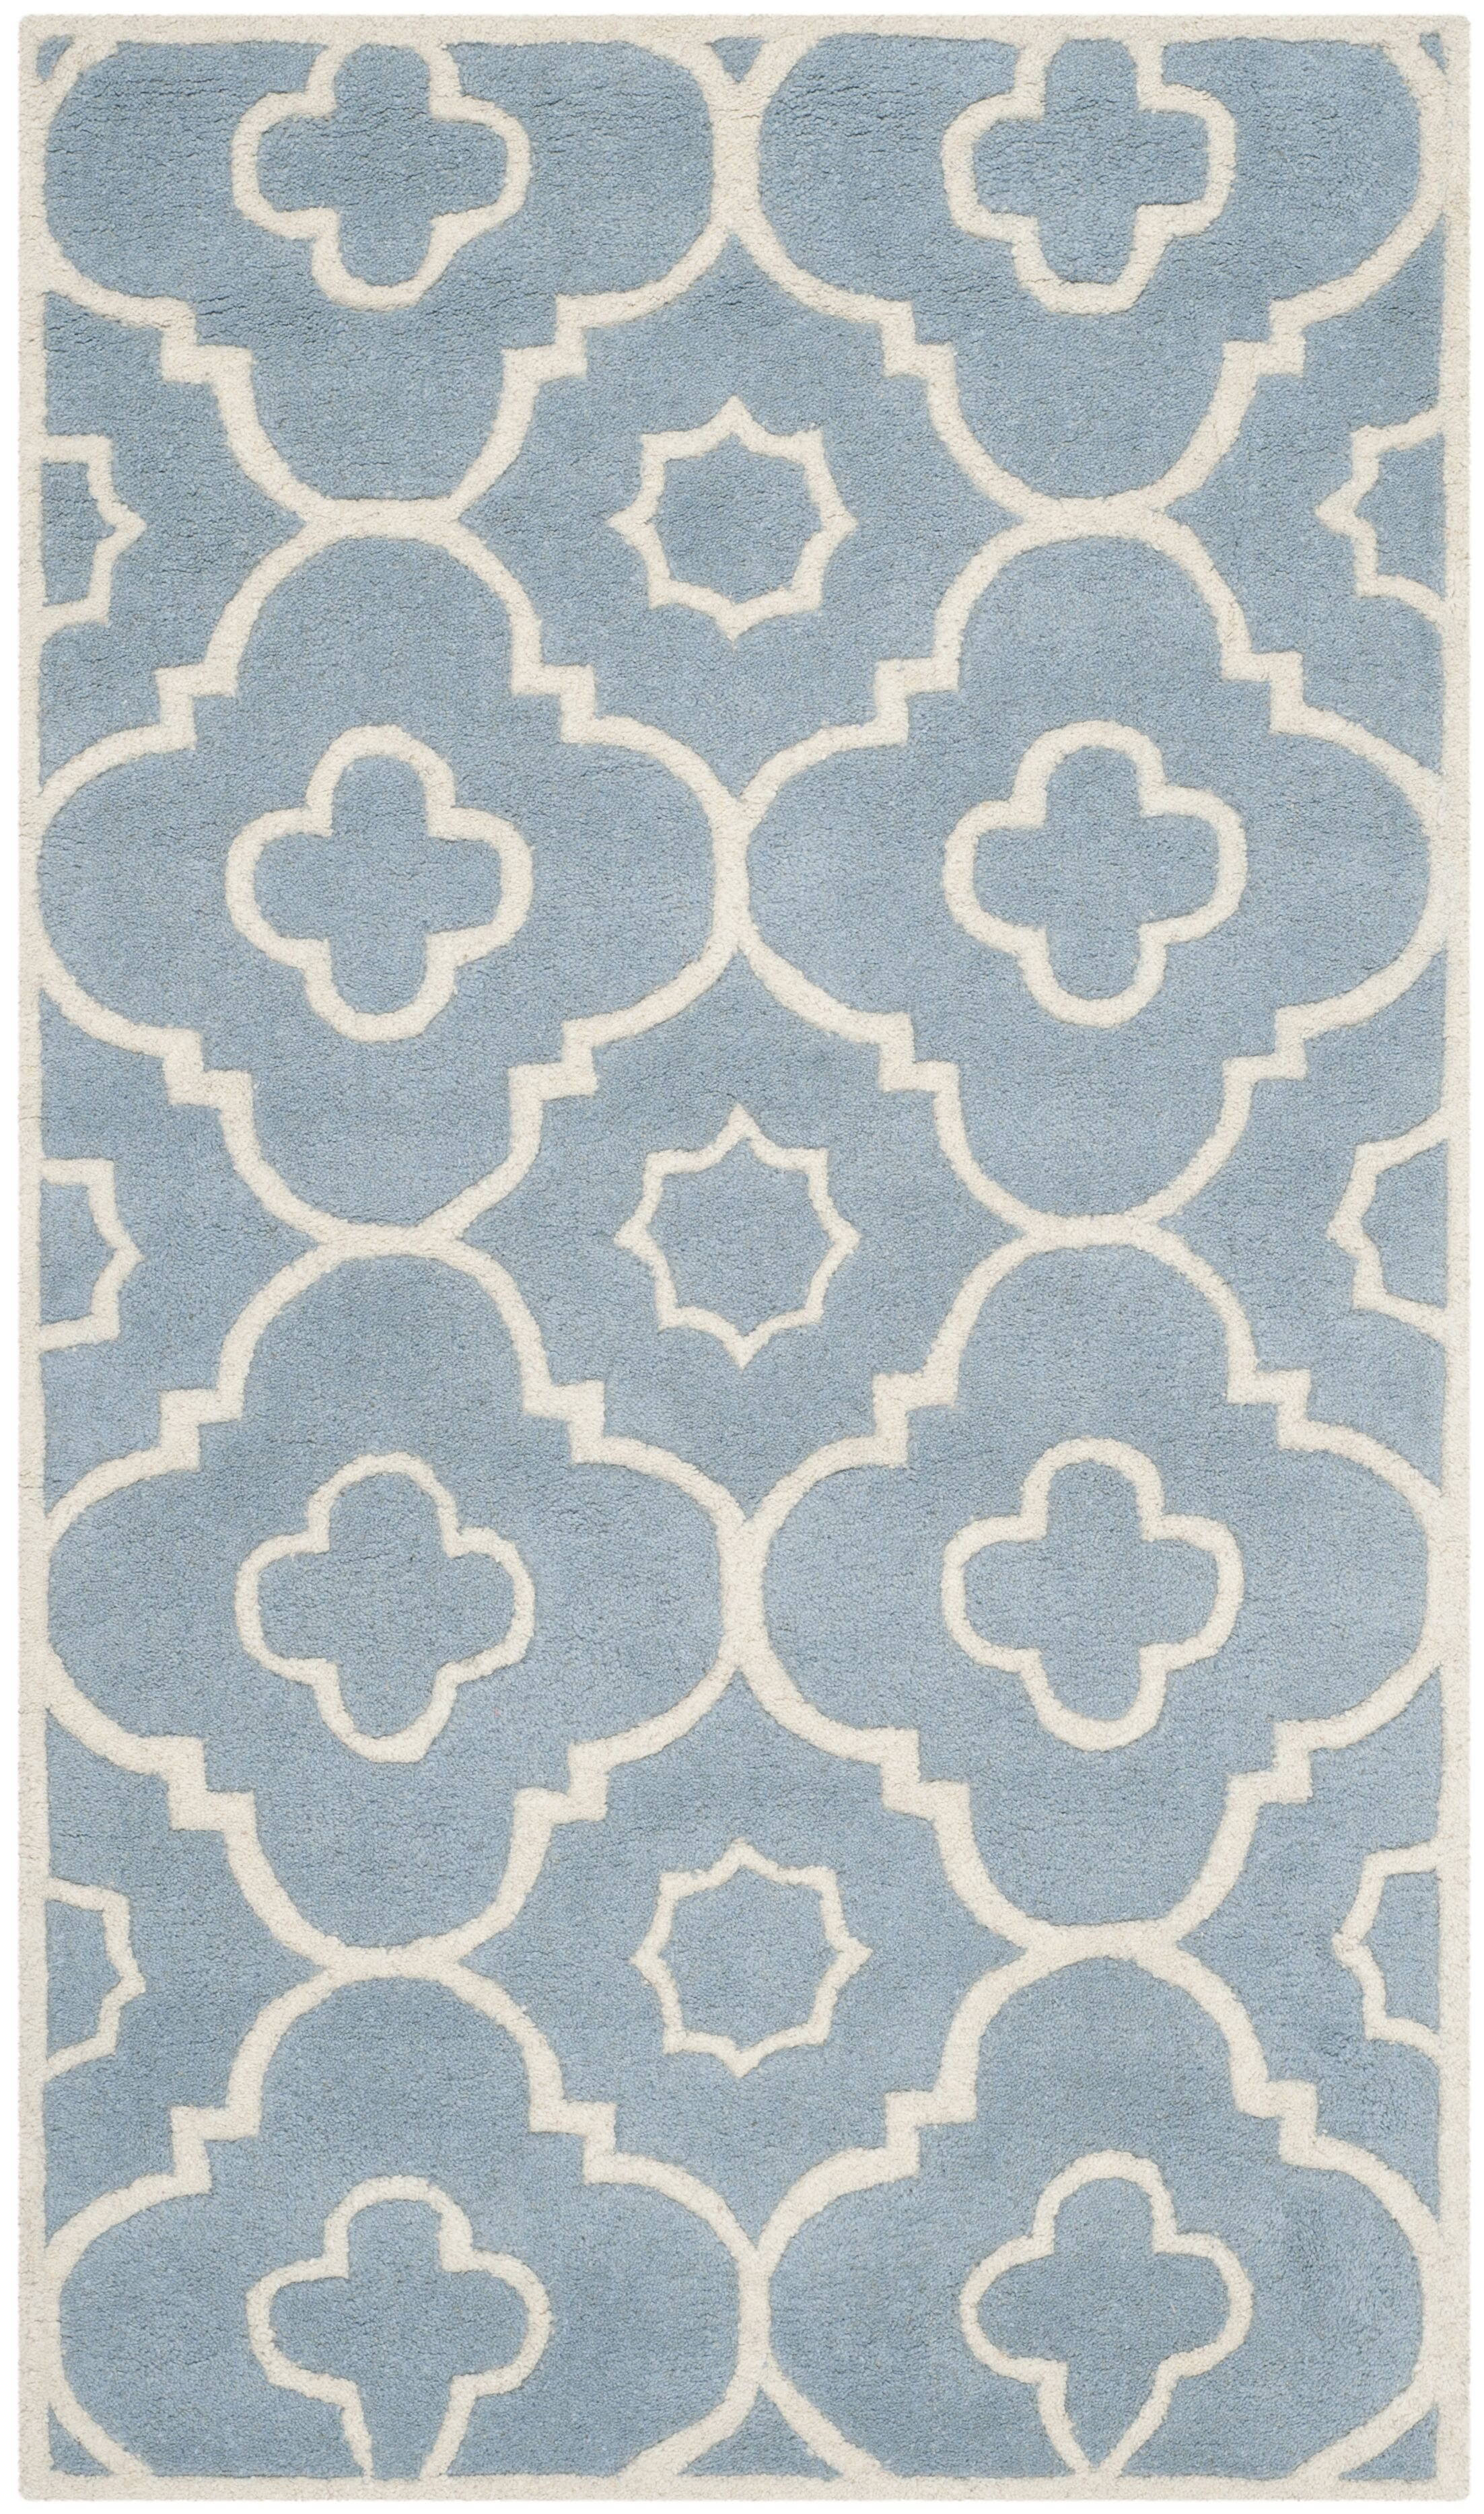 Wilkin Moroccan Hand-Tufted Wool Blue/Ivory Area Rug Rug Size: Rectangle 3' x 5'